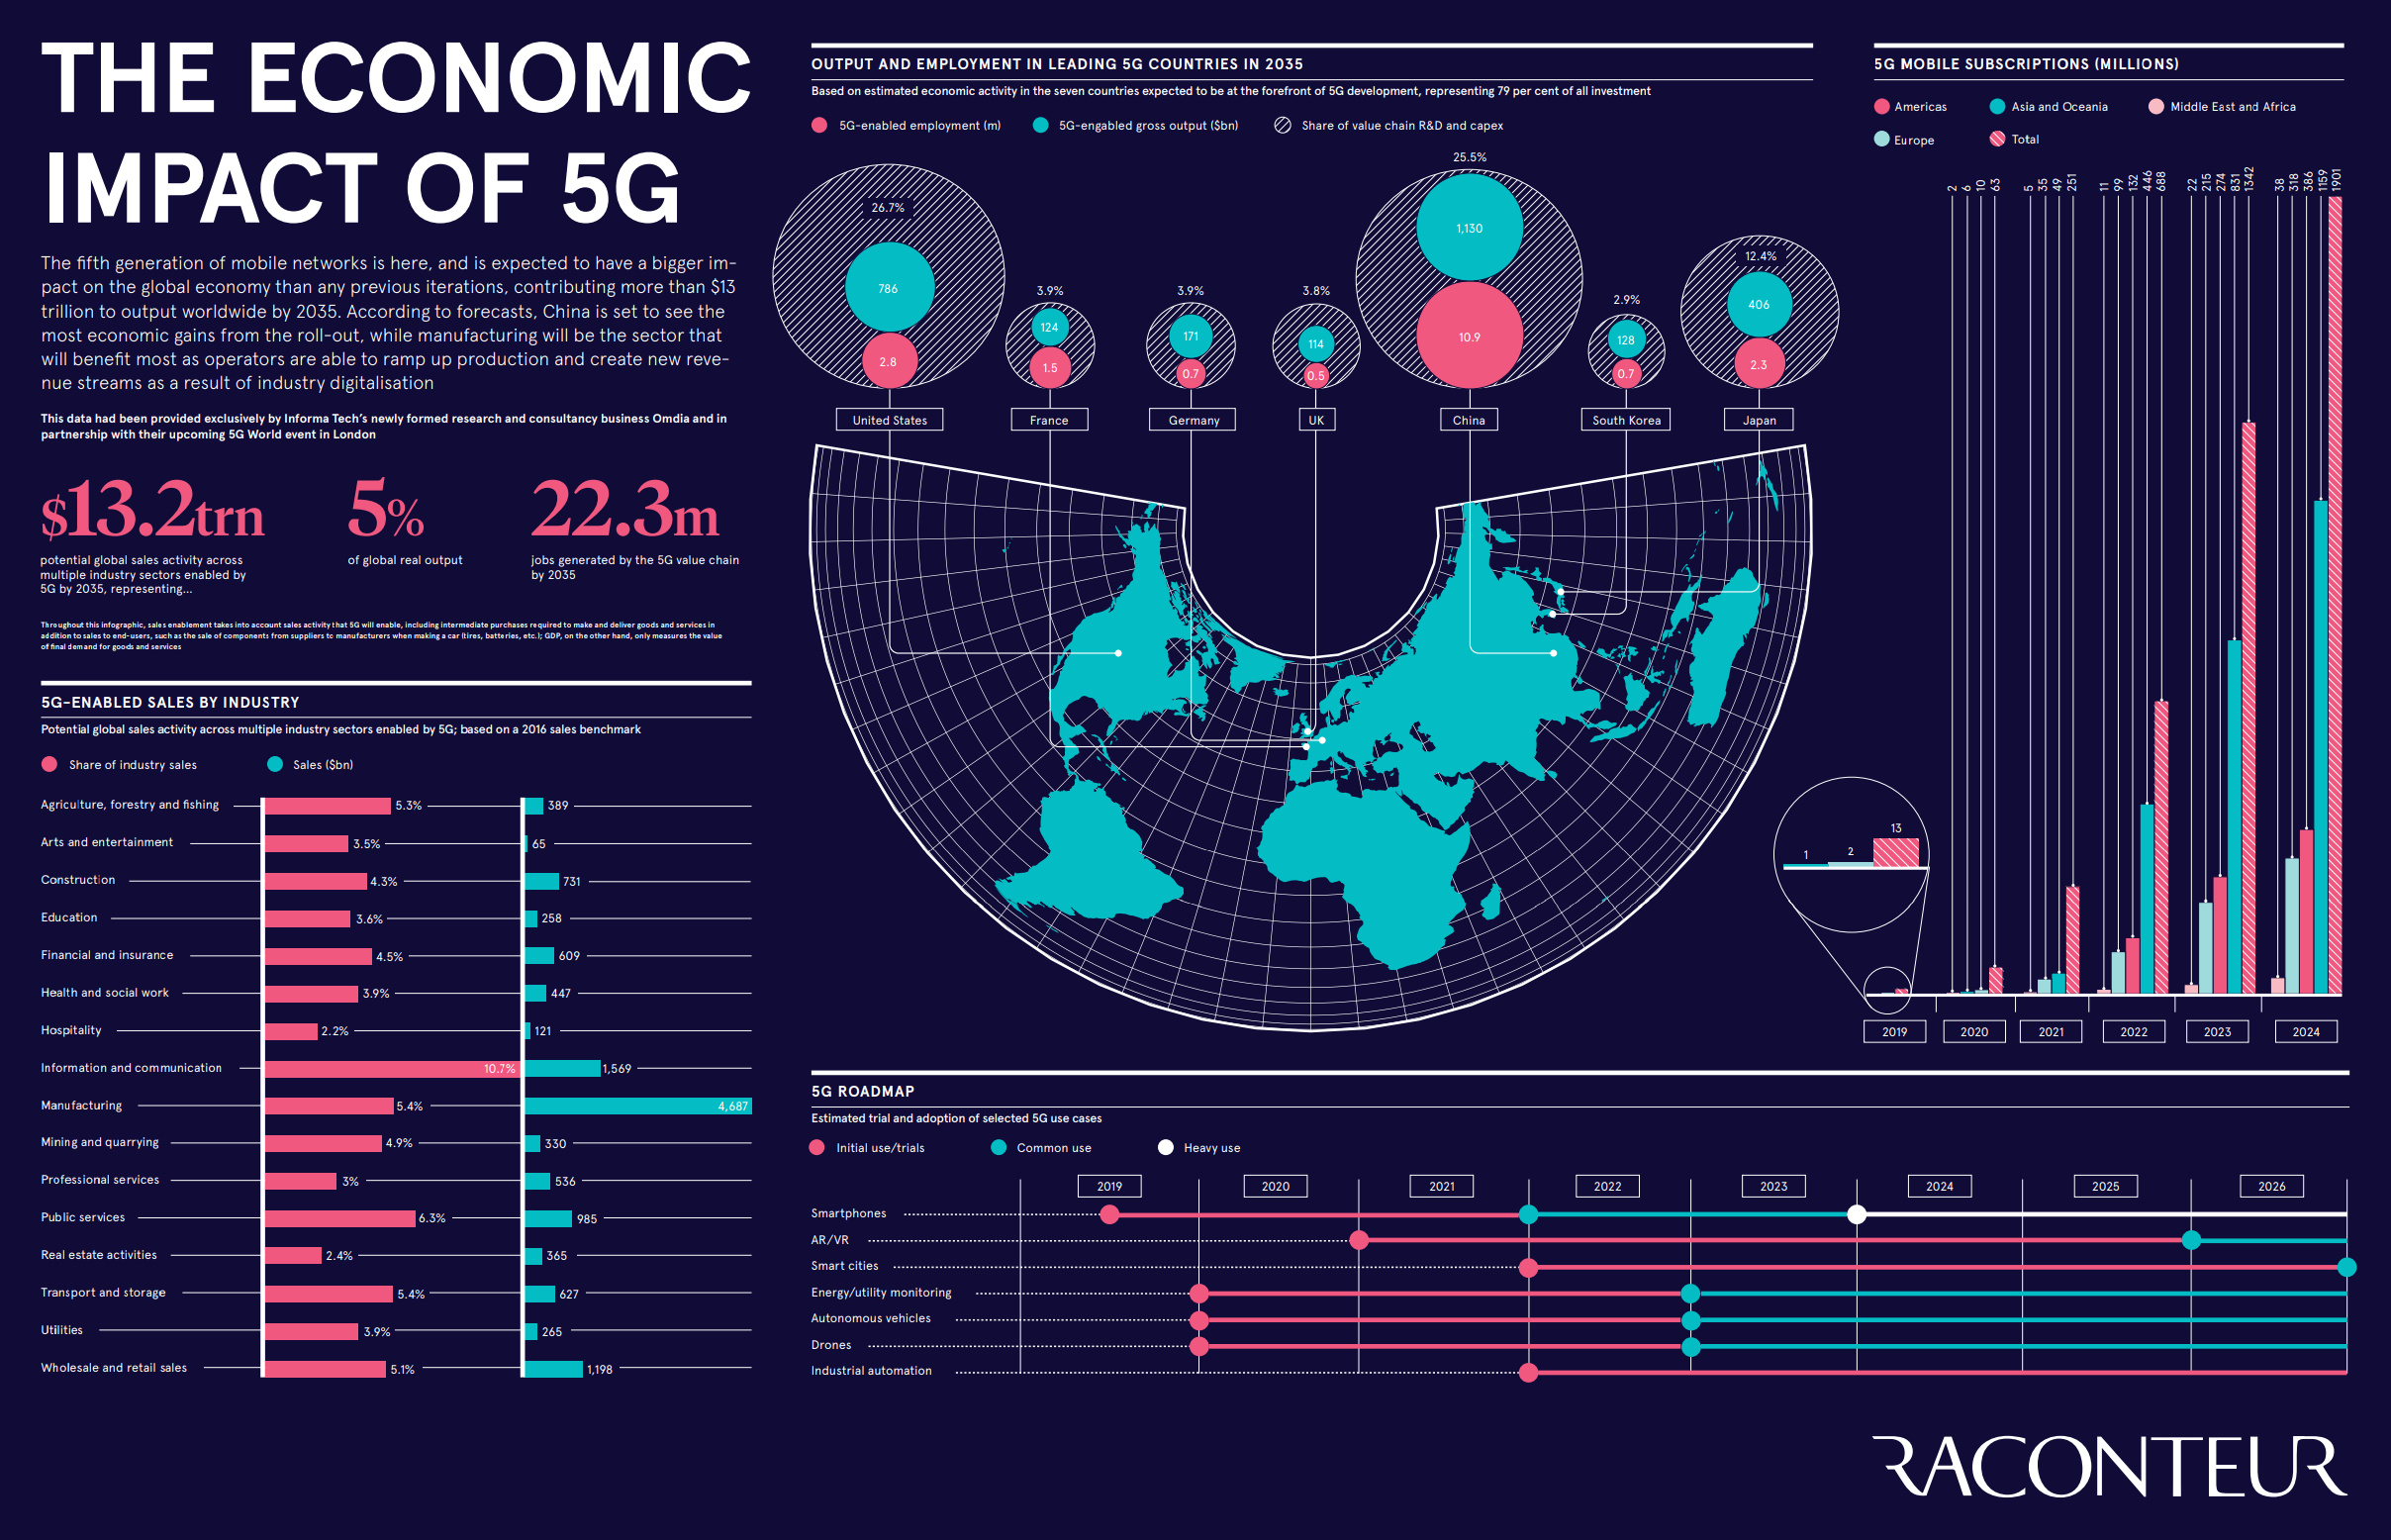 Visualized: Where 5G Will Change The World